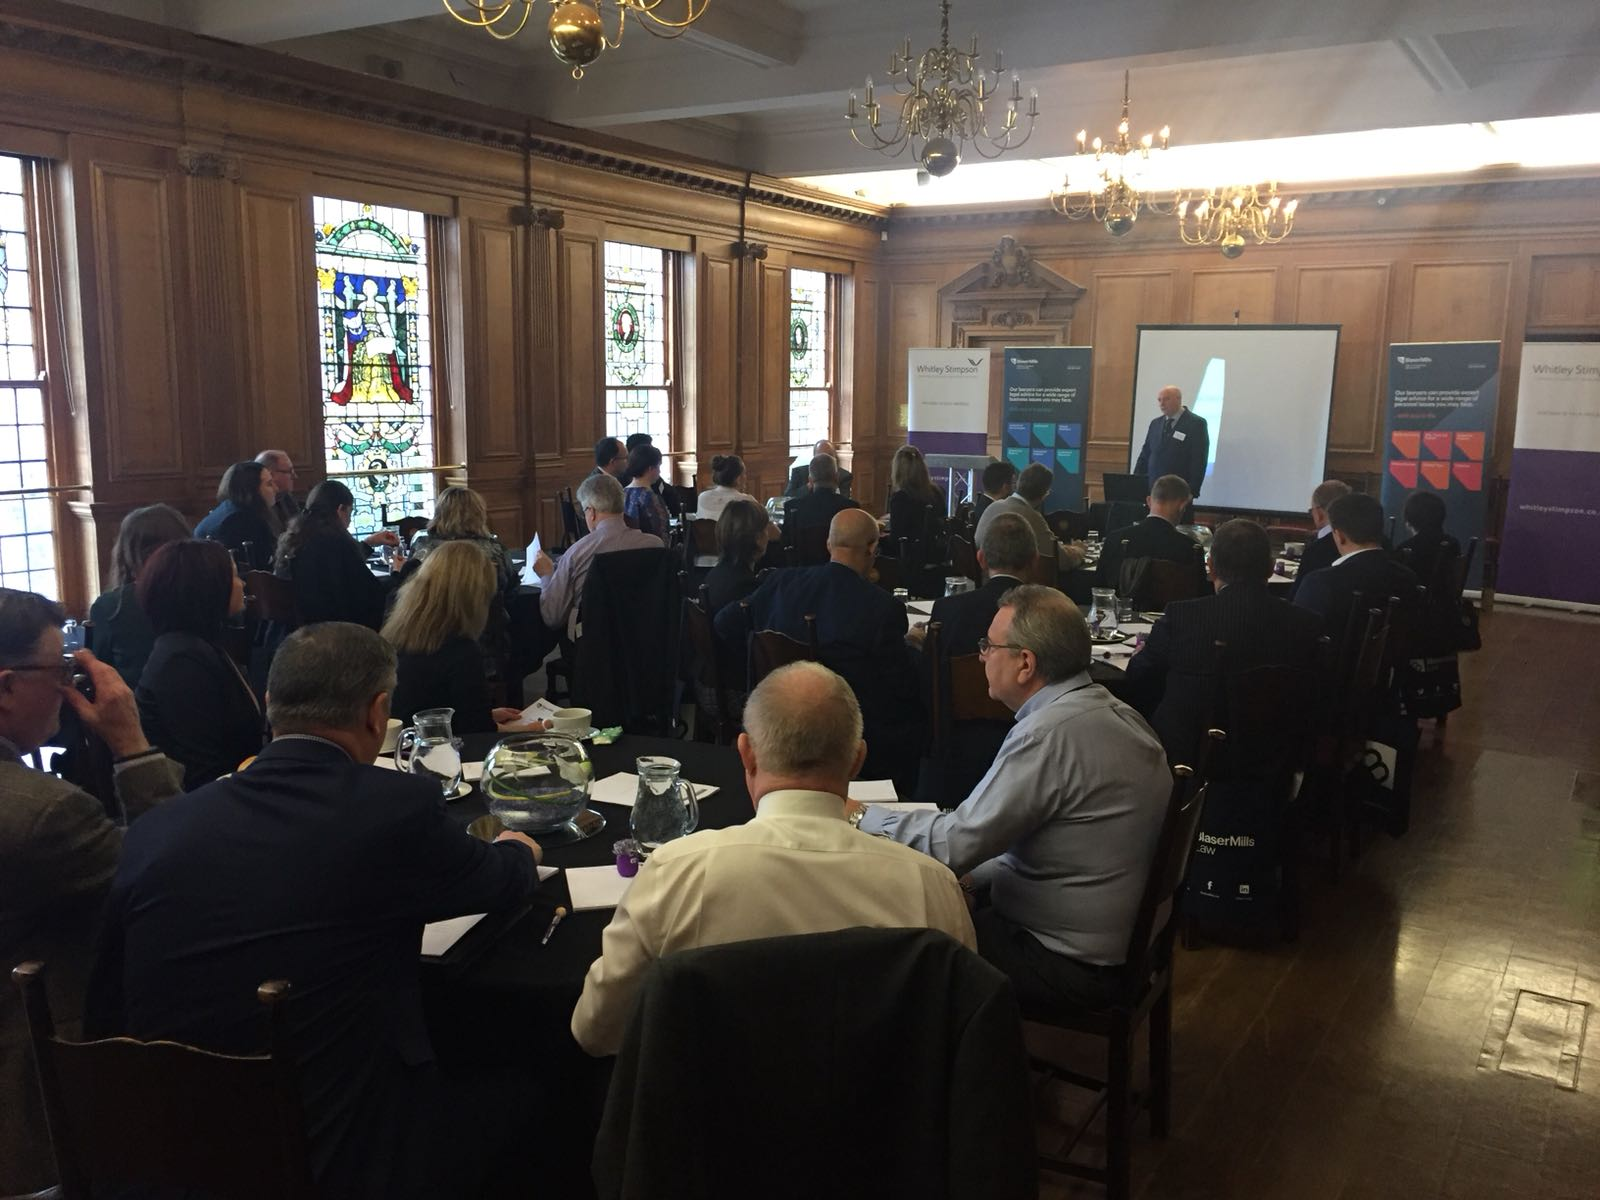 Whitley Stimpson hosts Business Succession Seminar